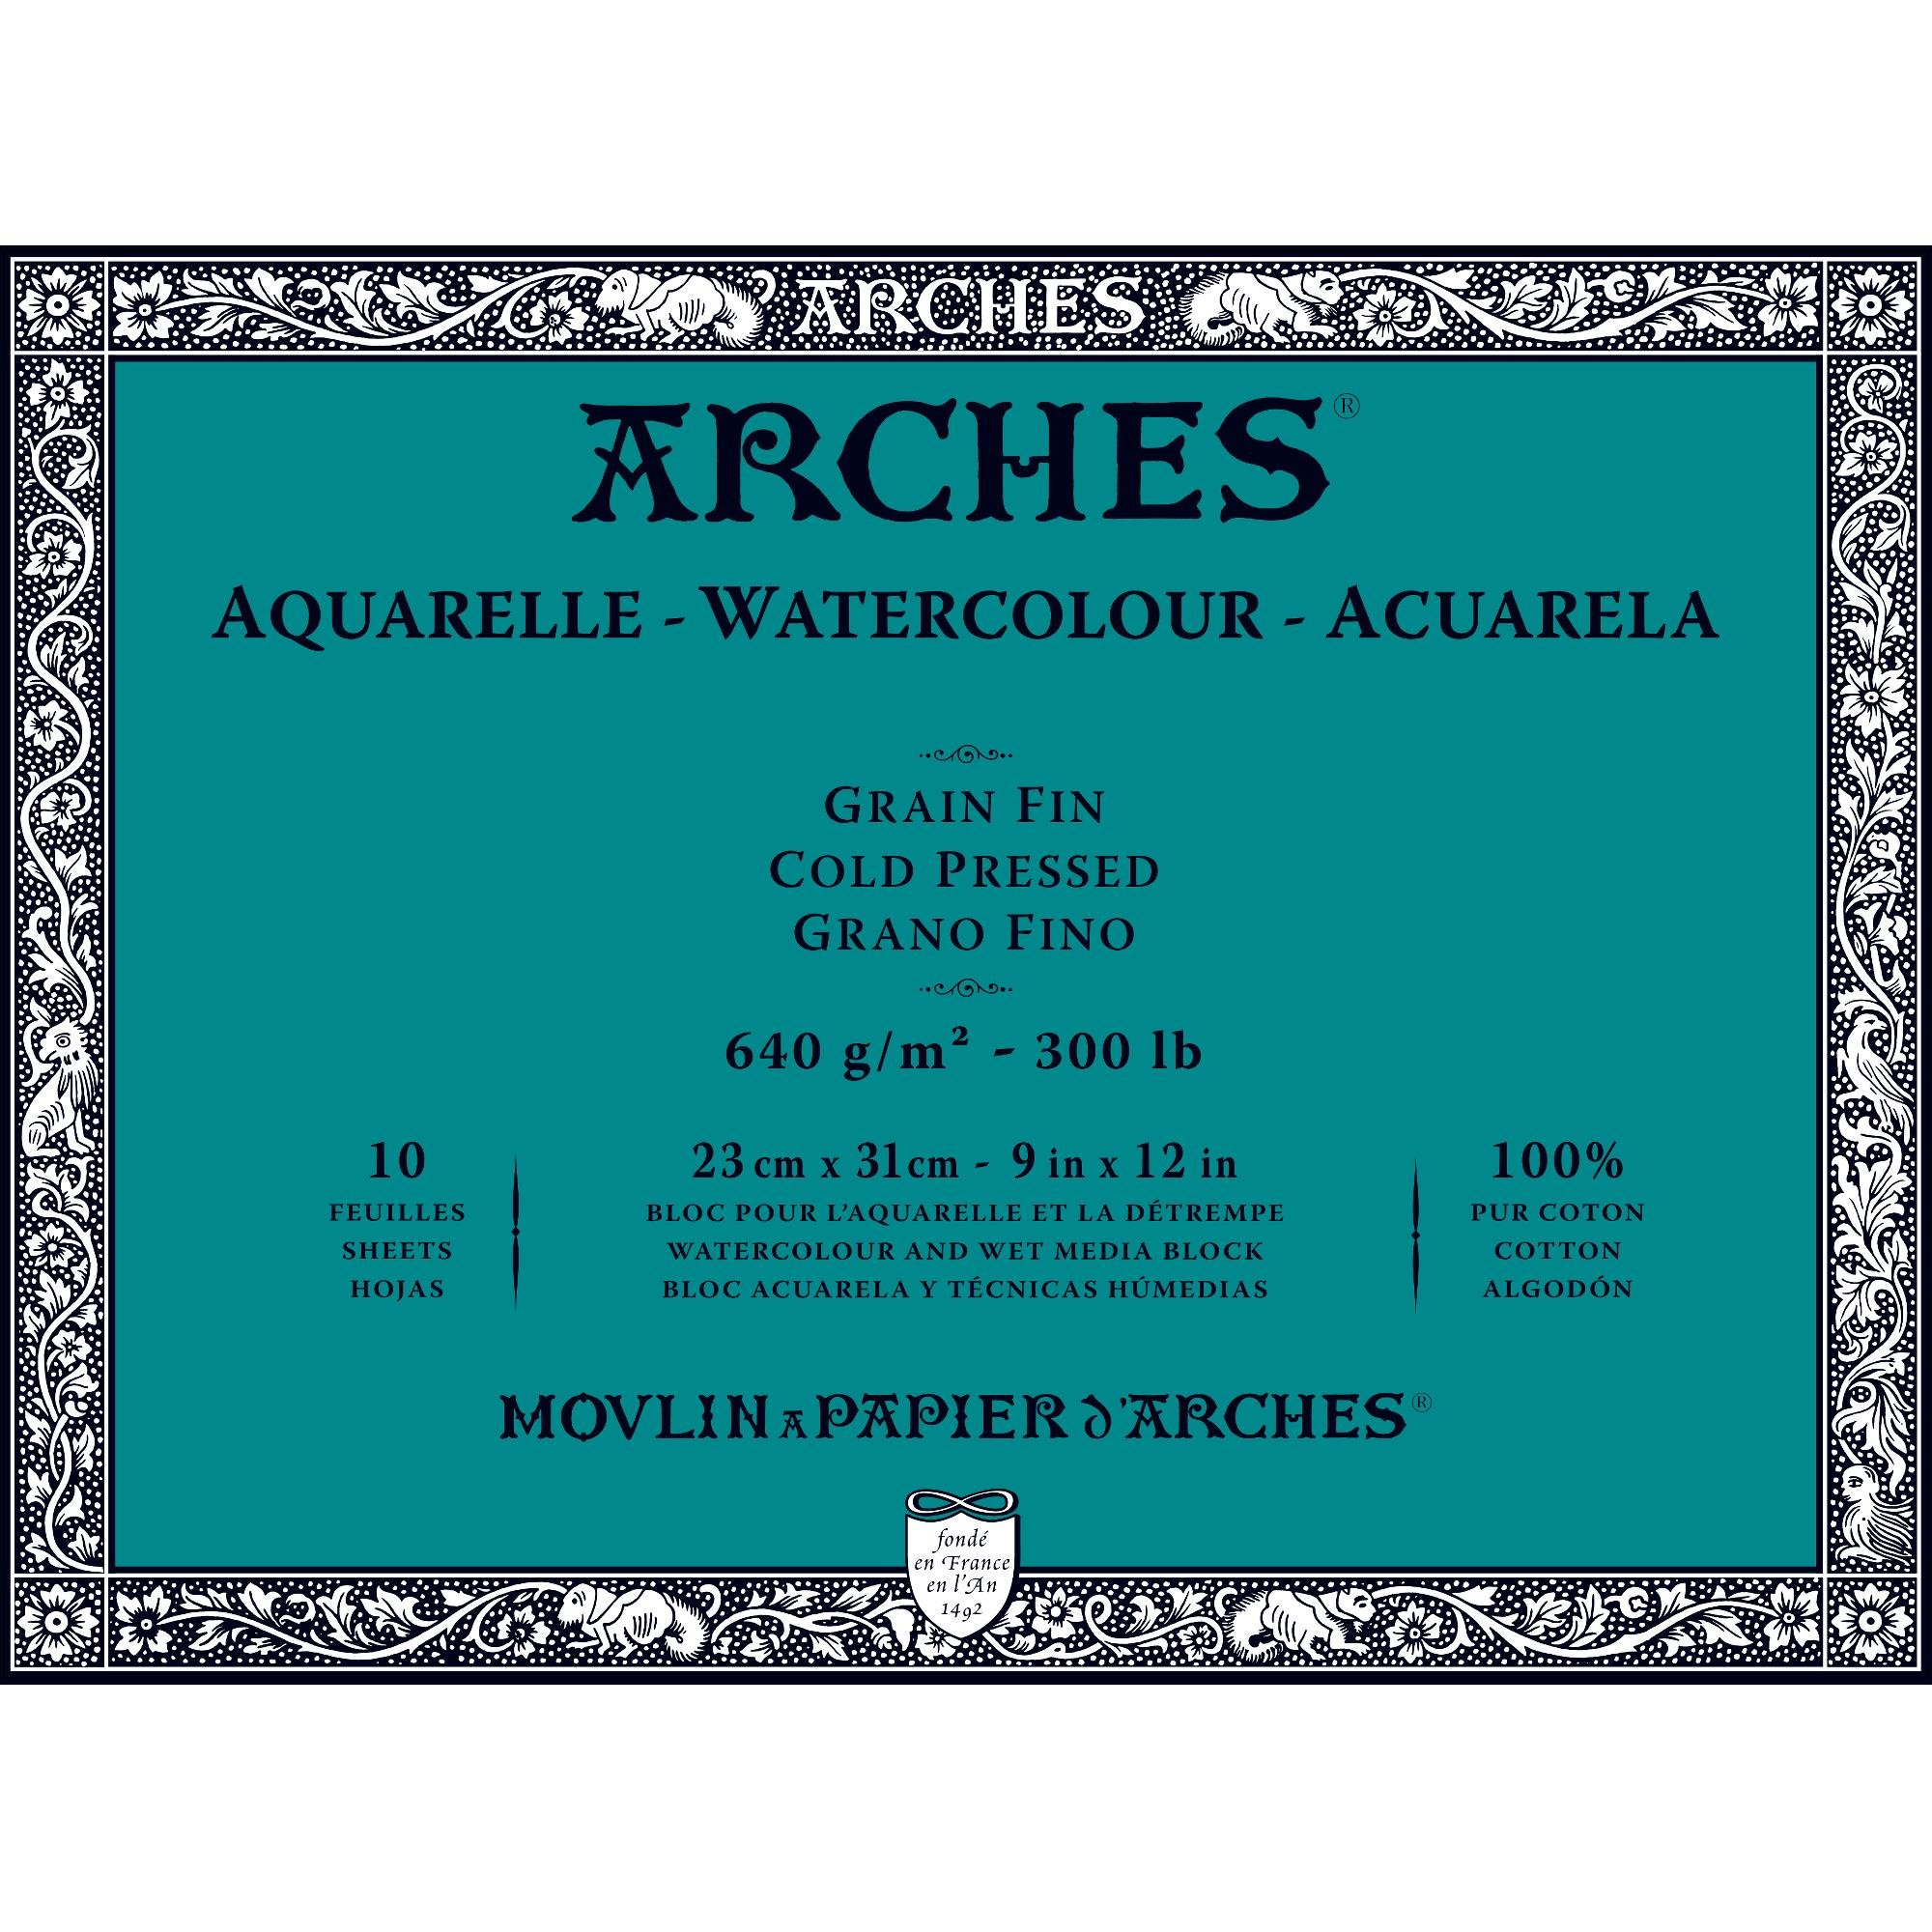 Arches Water Colour Block, 300 lb / 640GSM, Cold Pressed, 9'' x 12'' by Arches